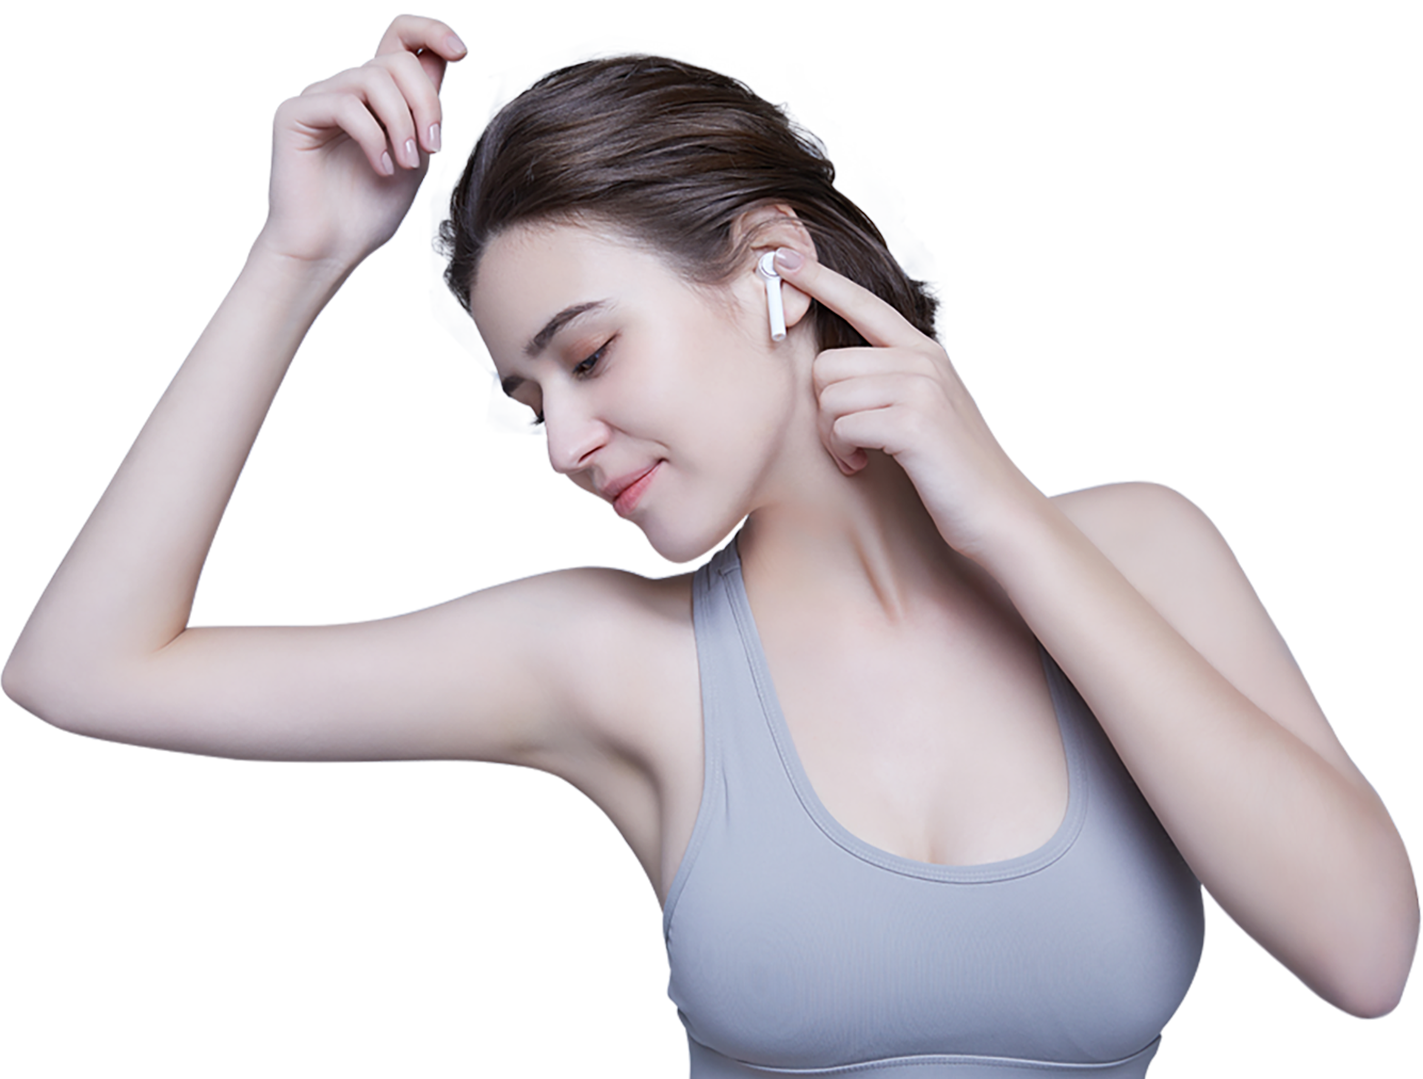 https://i01.appmifile.com/webfile/globalimg/products/pc/mi-true-wireless-earphones/section8-pic.png